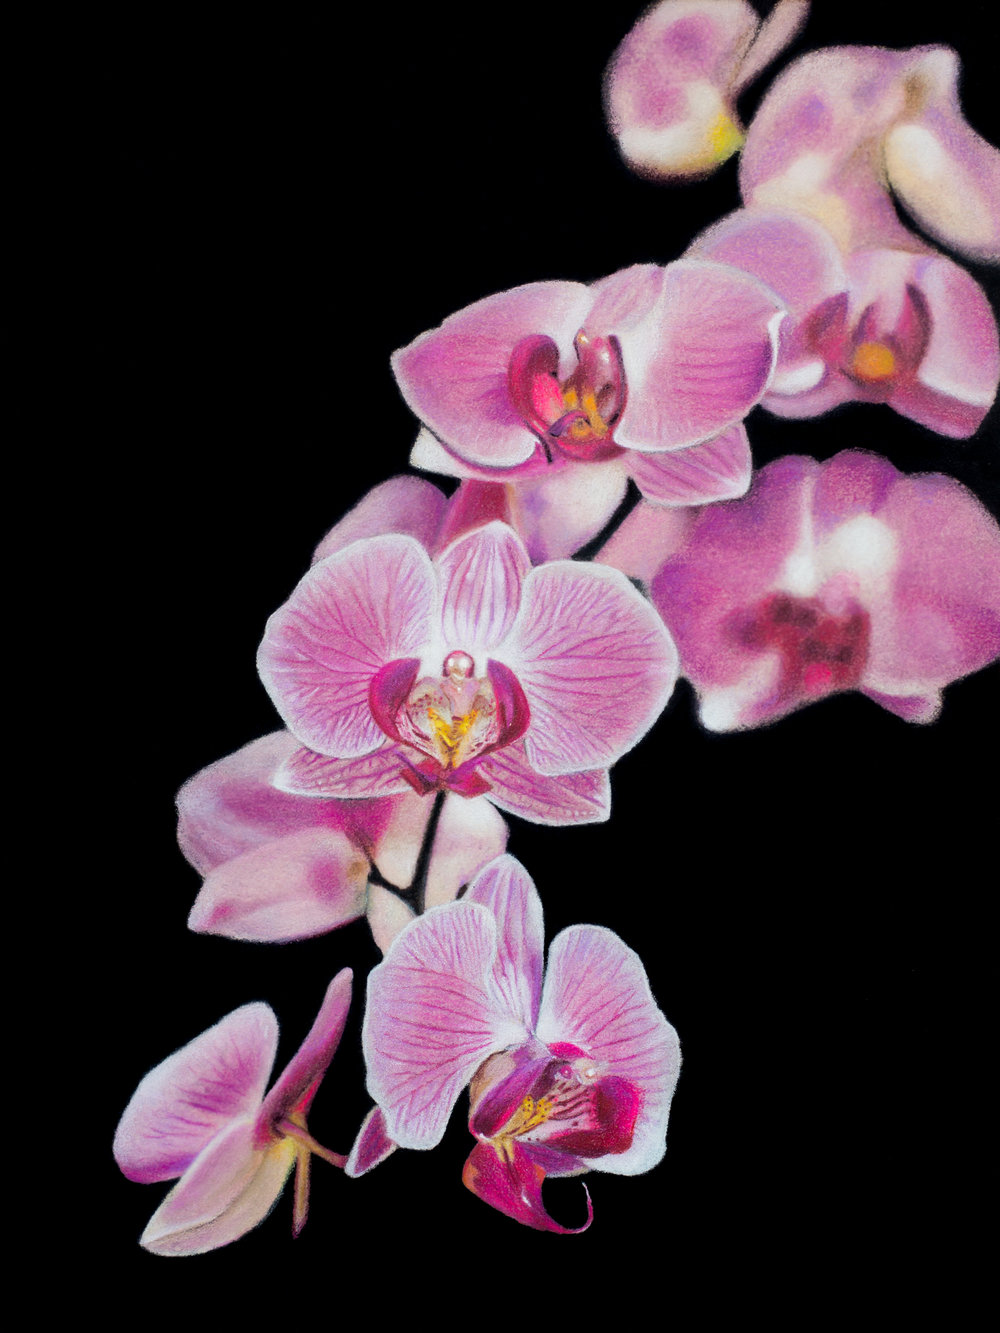 20496922-mandypeltier_orchidblossoms_mixedmedia_9x12_700 (1 of 1).jpg